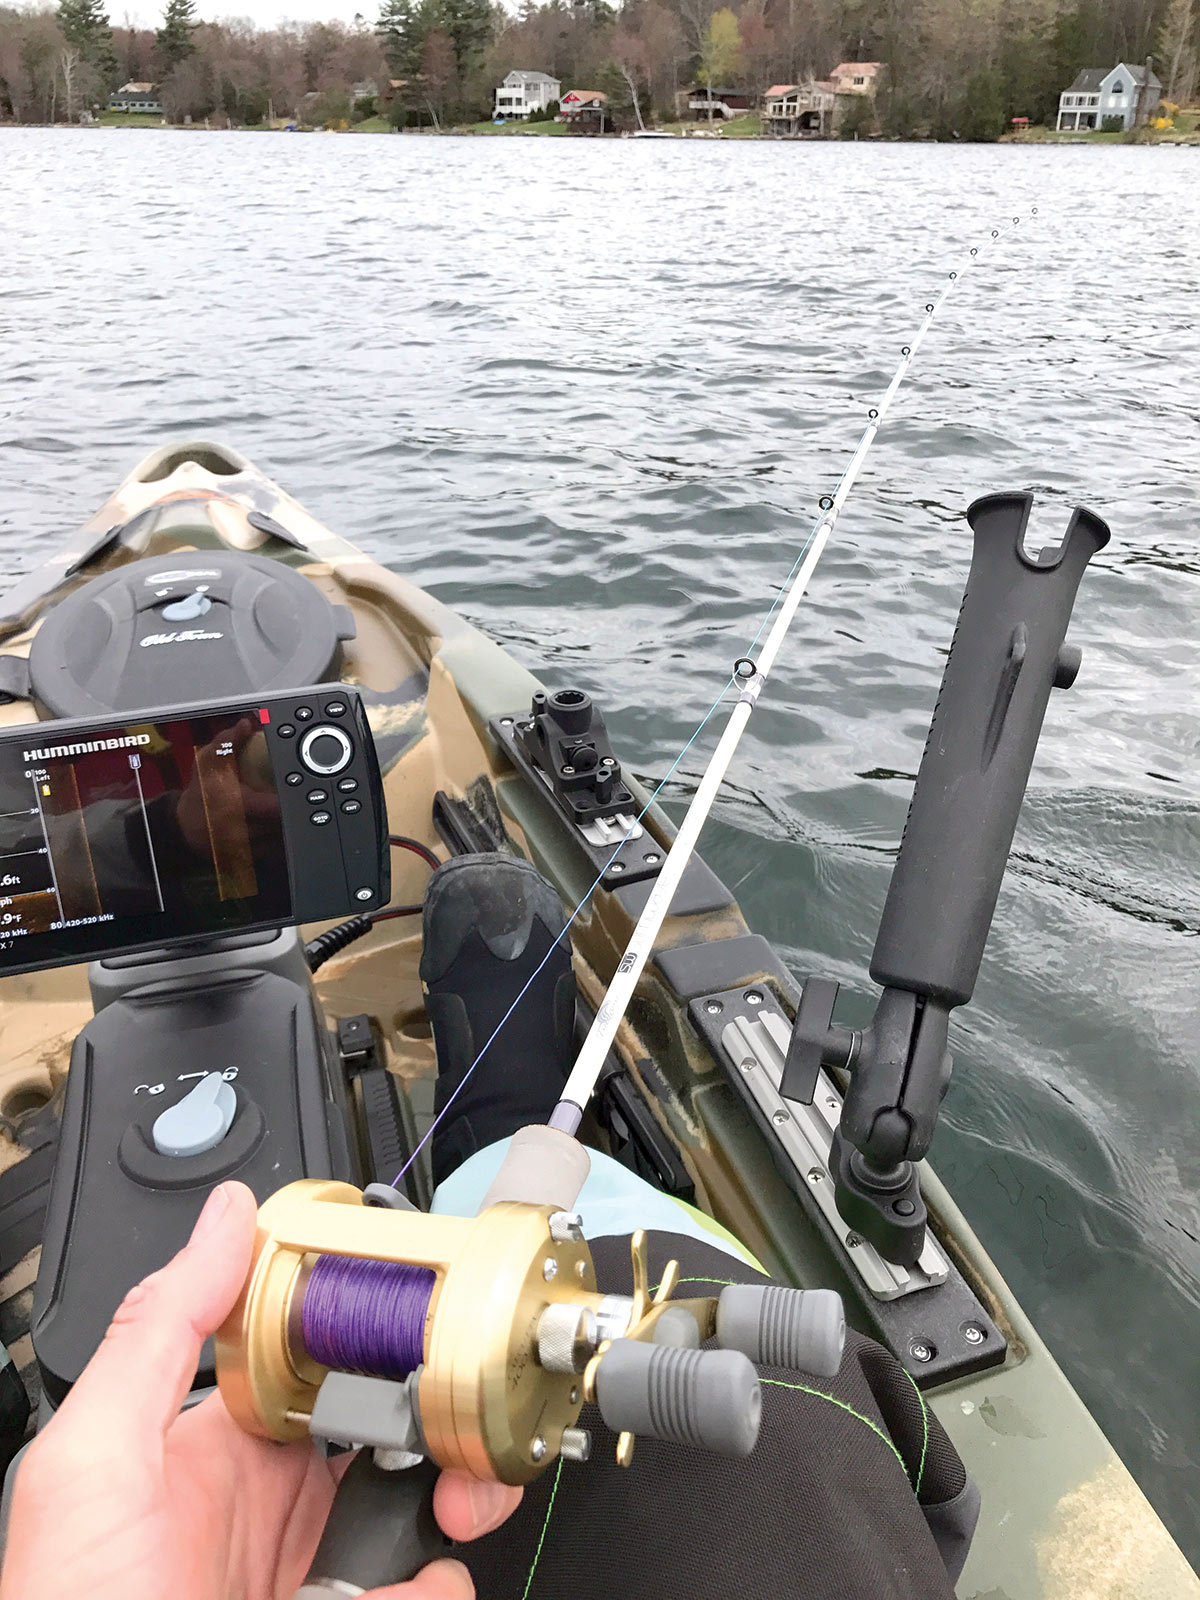 2018 6 The Proper Pack Out Choose Wisely Kayak Rigging 4